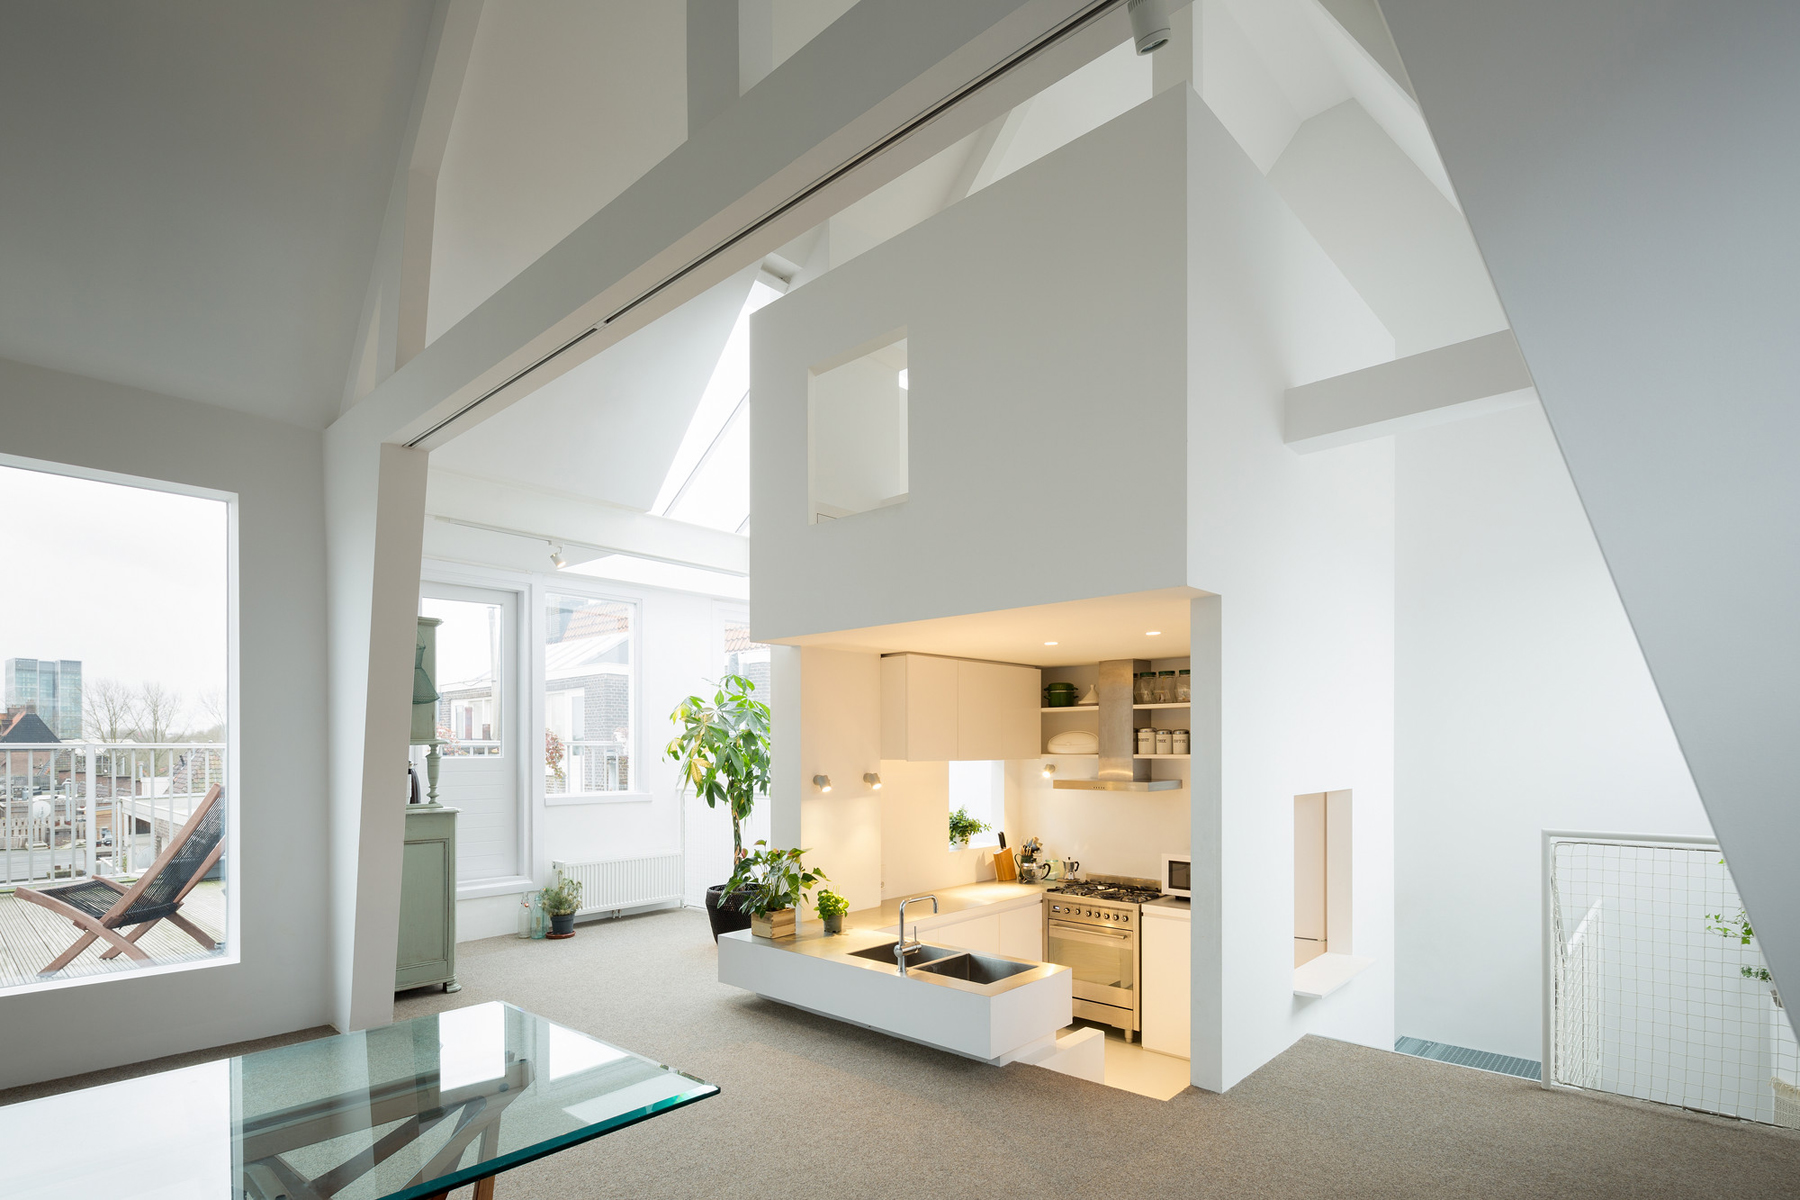 Unique modern attic duplex apartment in amsterdam with for Duplex house interior designs photos